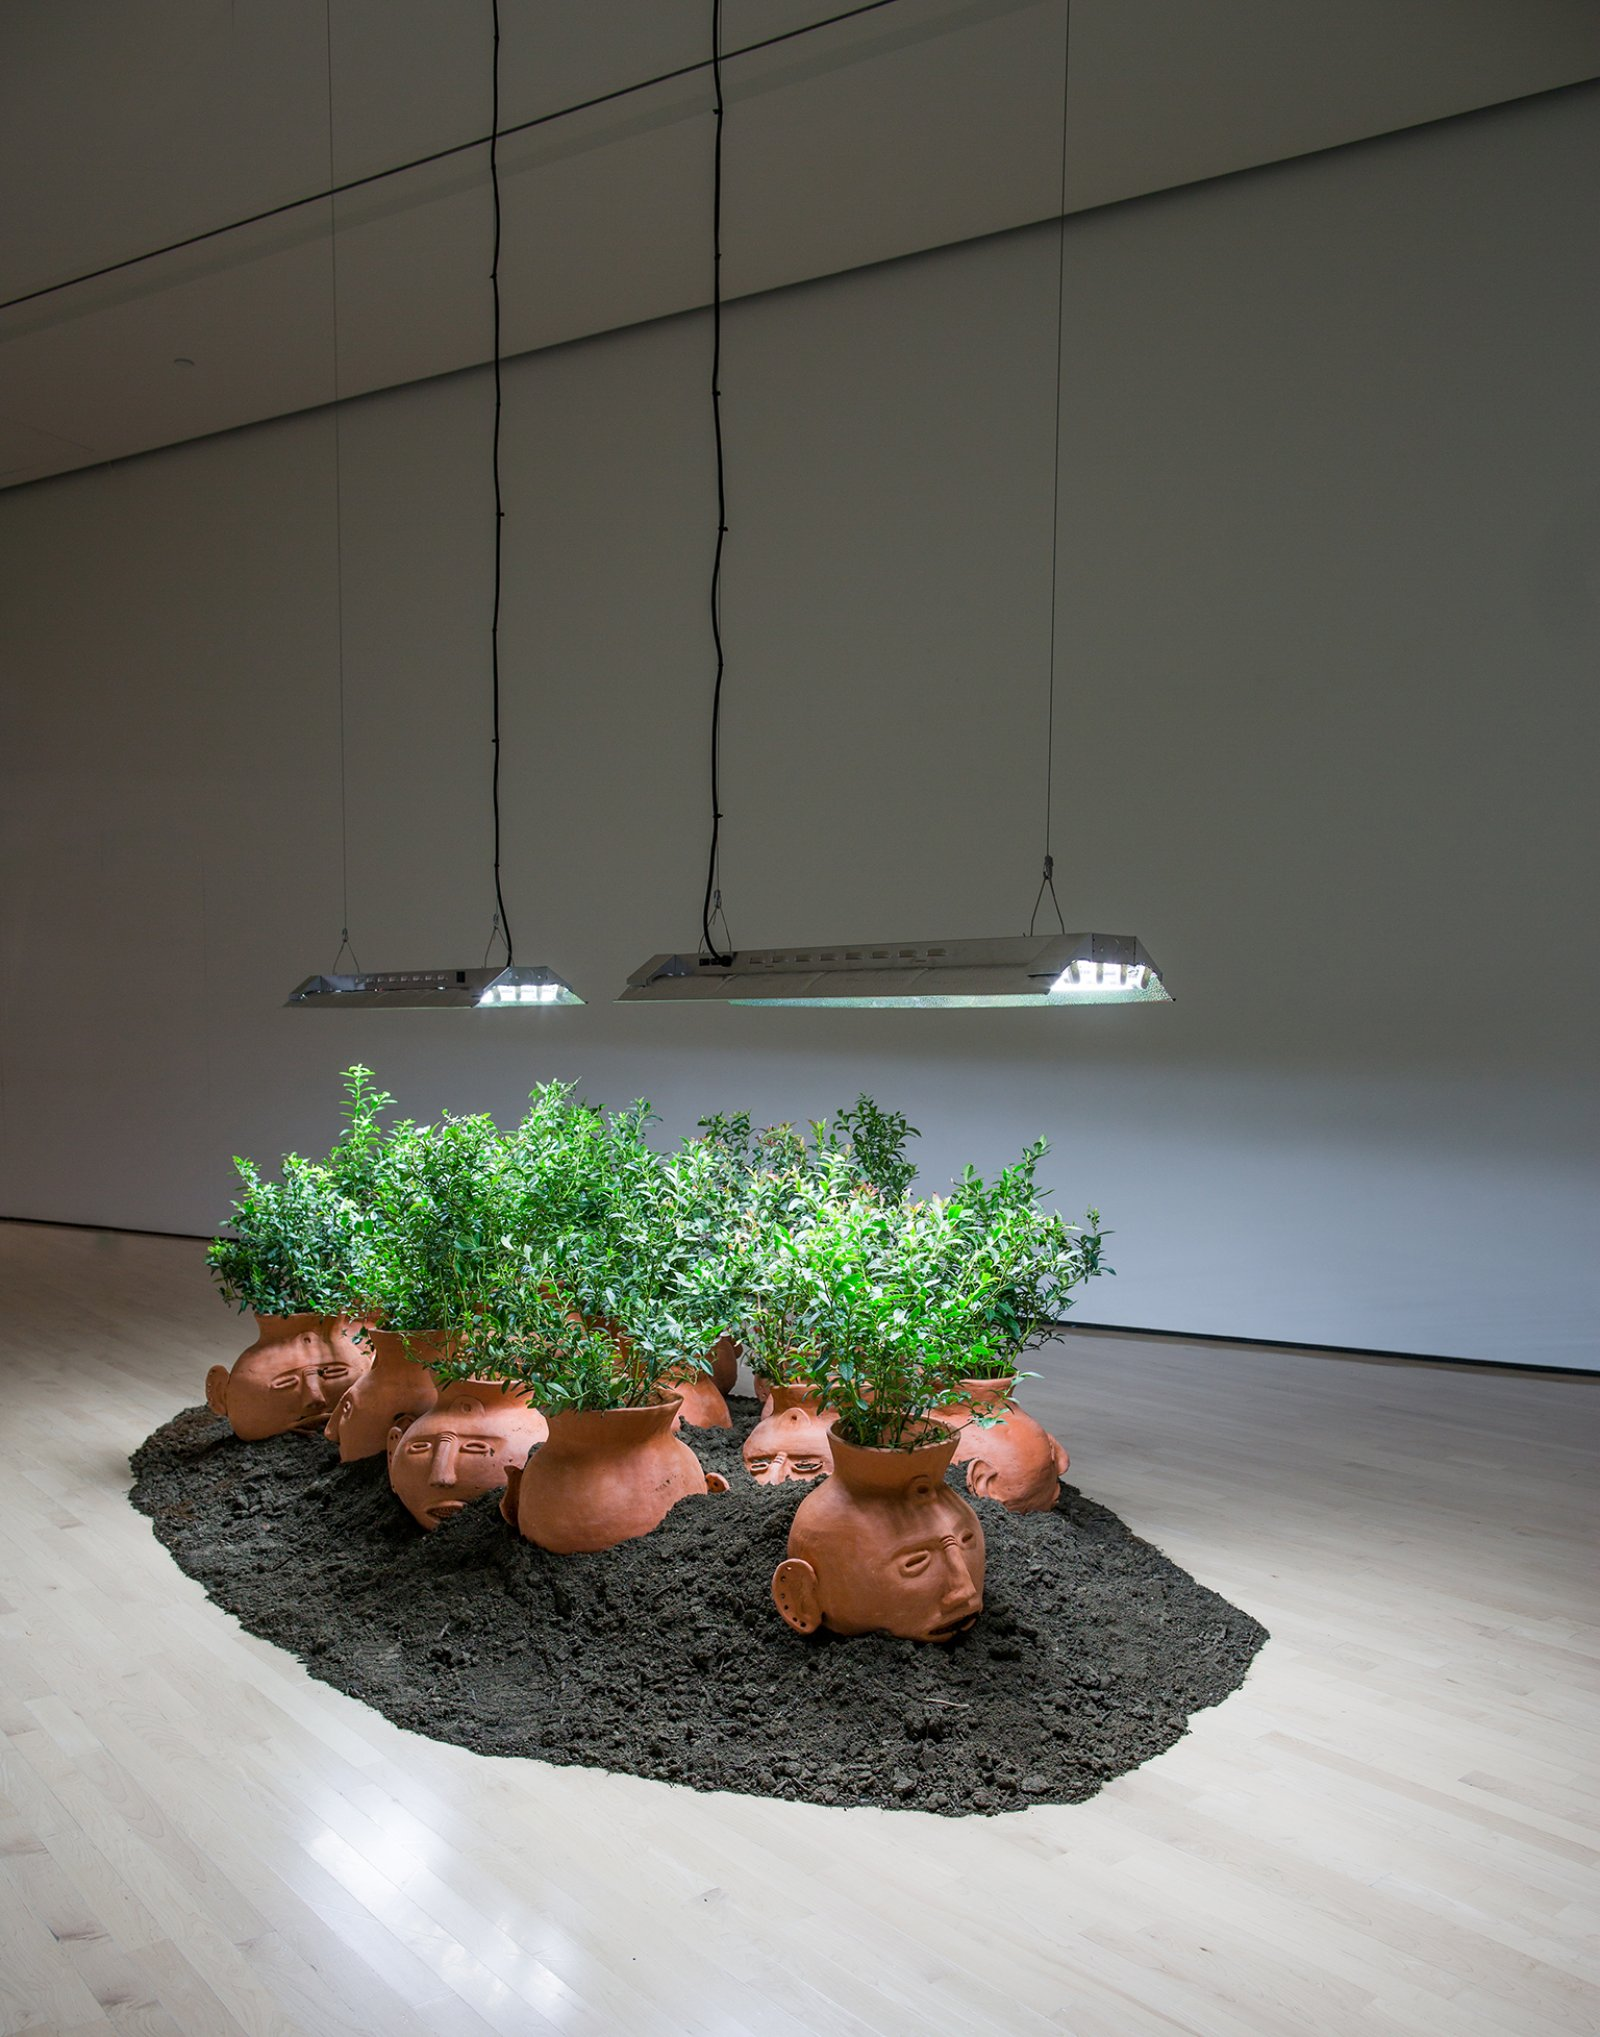 Duane Linklater, Blueberries for 15 vessels, 2012–2017, blueberry bushes, clay, earth, dimensions variable. Installation view, Field Station: Duane Linklater, MSU Broad, East Lansing, MI, 2017